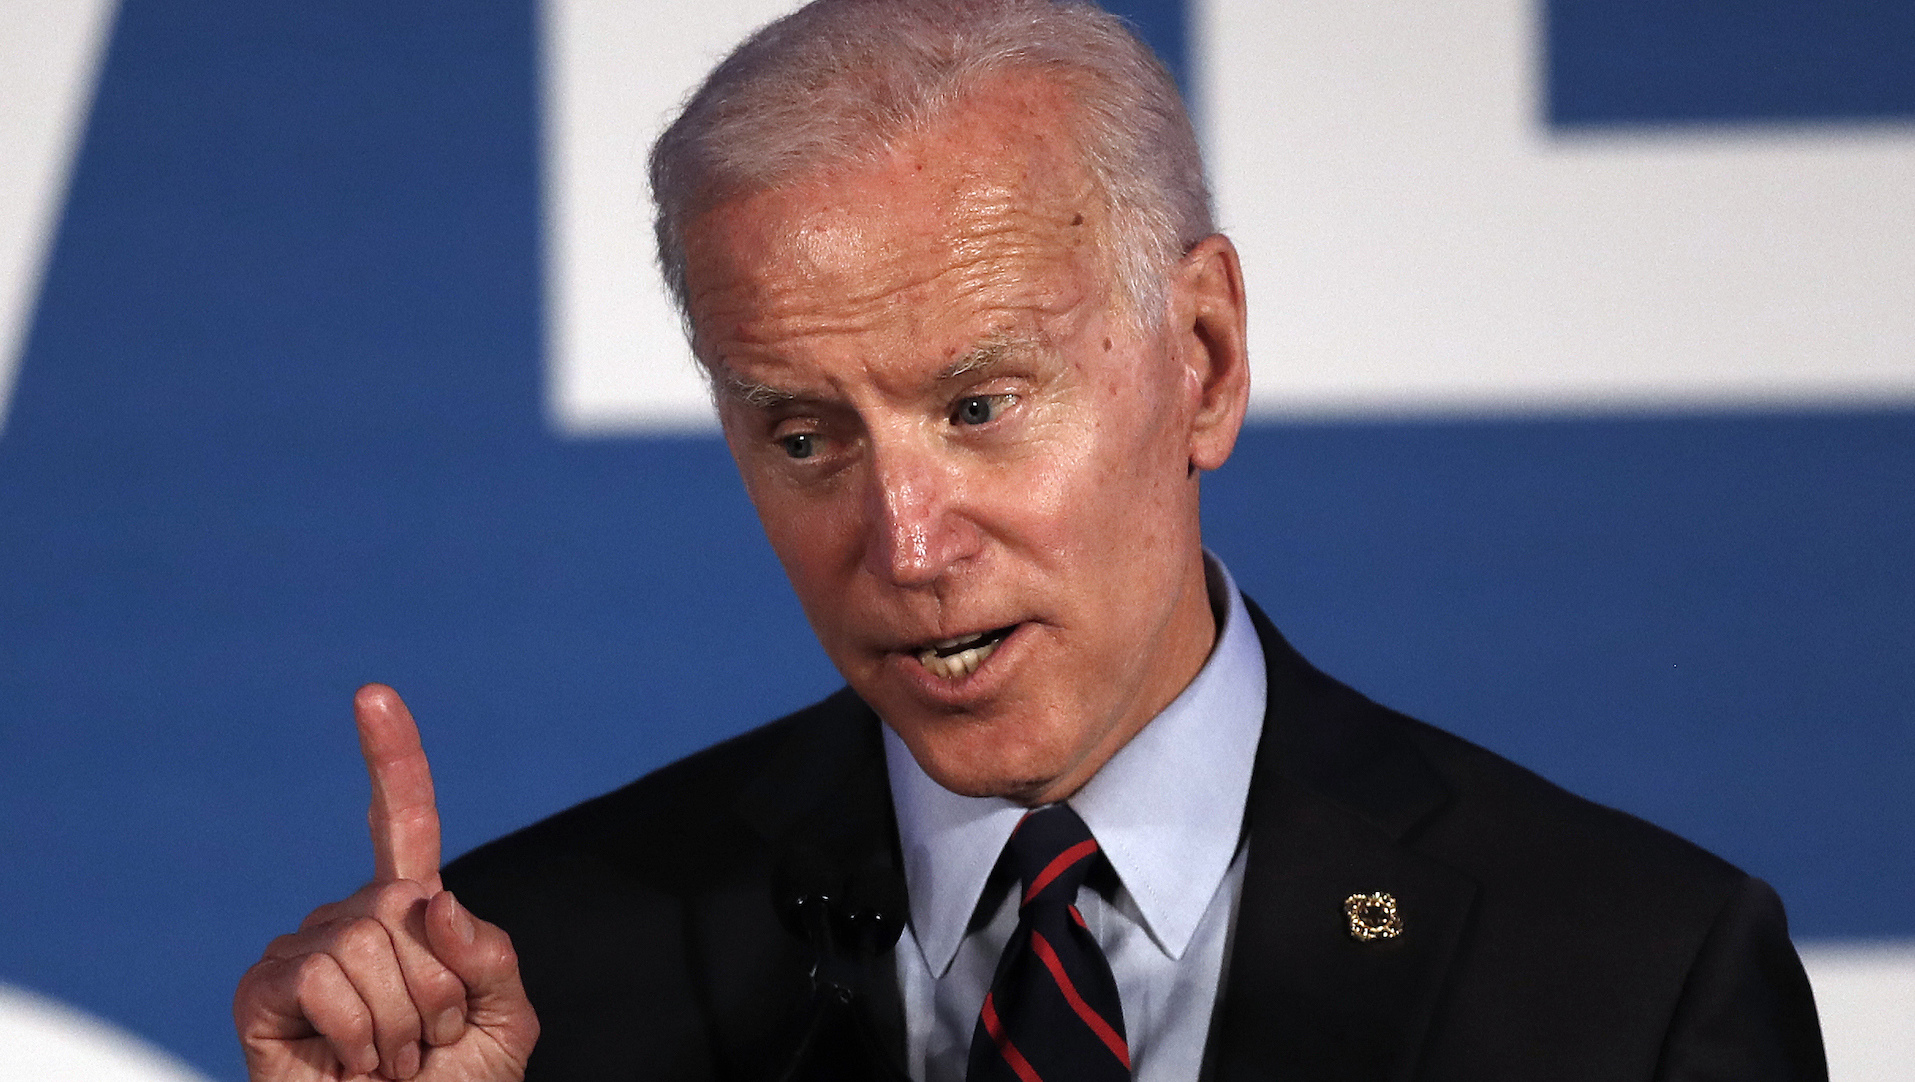 Joe Biden asked for a pen. Then he reversed a position he'd held for four decades.